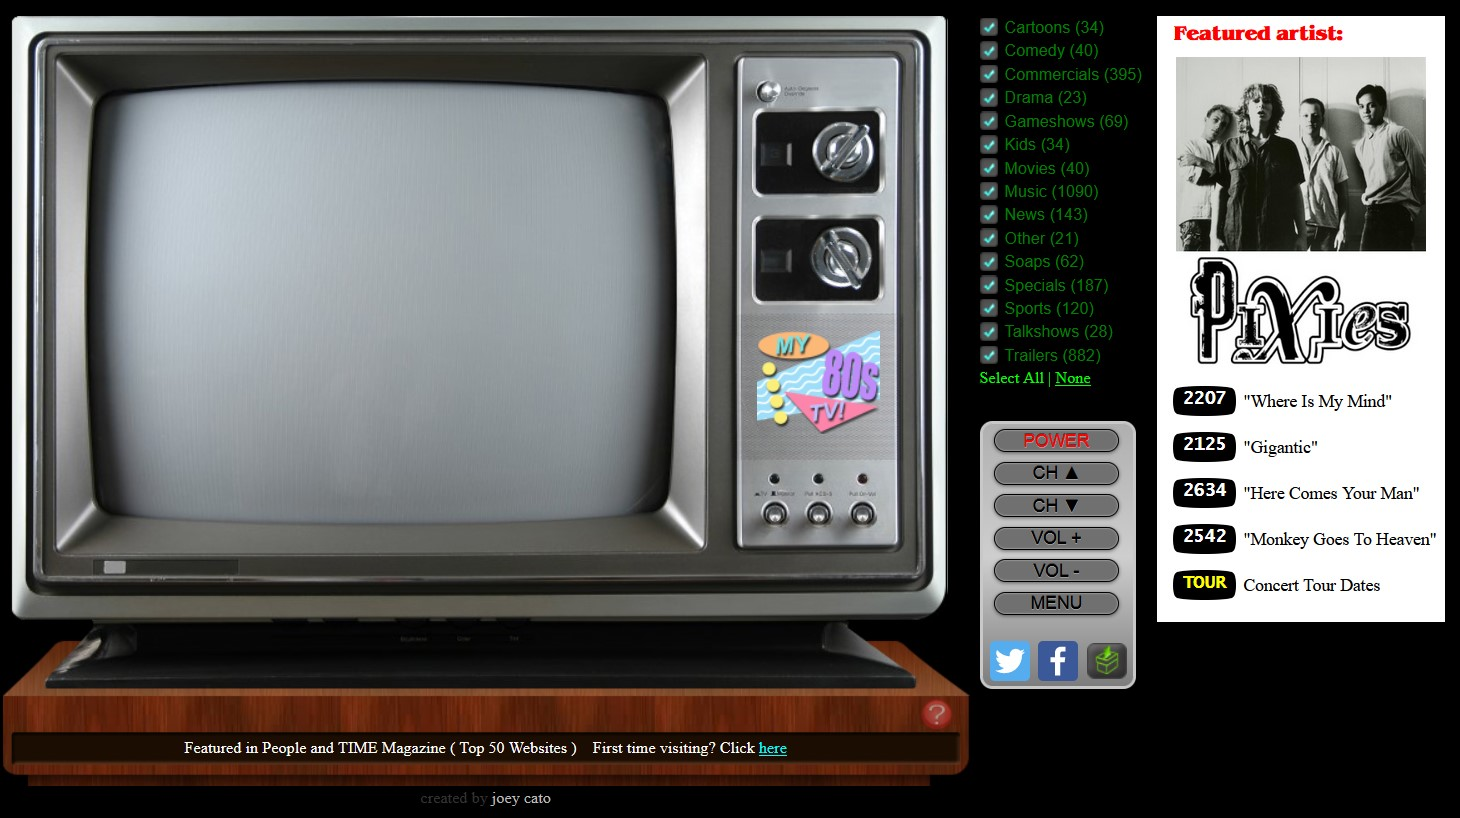 My 80s TV, awesome retro TV